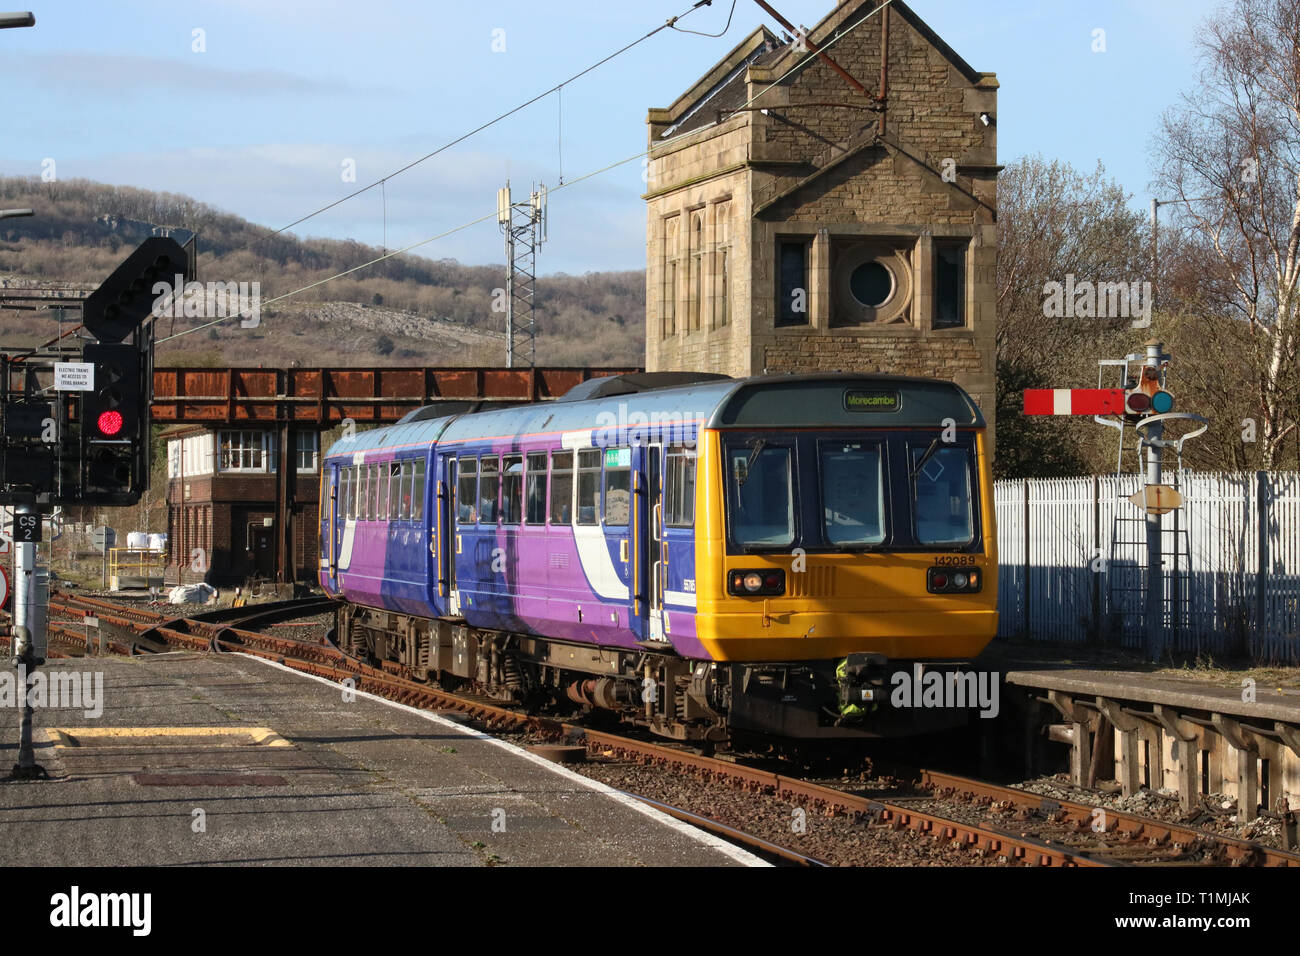 Class 142 Pacer two car diesel multiple unit in Northern livery arriving at Carnforth station with a Leeds to Morecambe train on 25th March 2019. - Stock Image